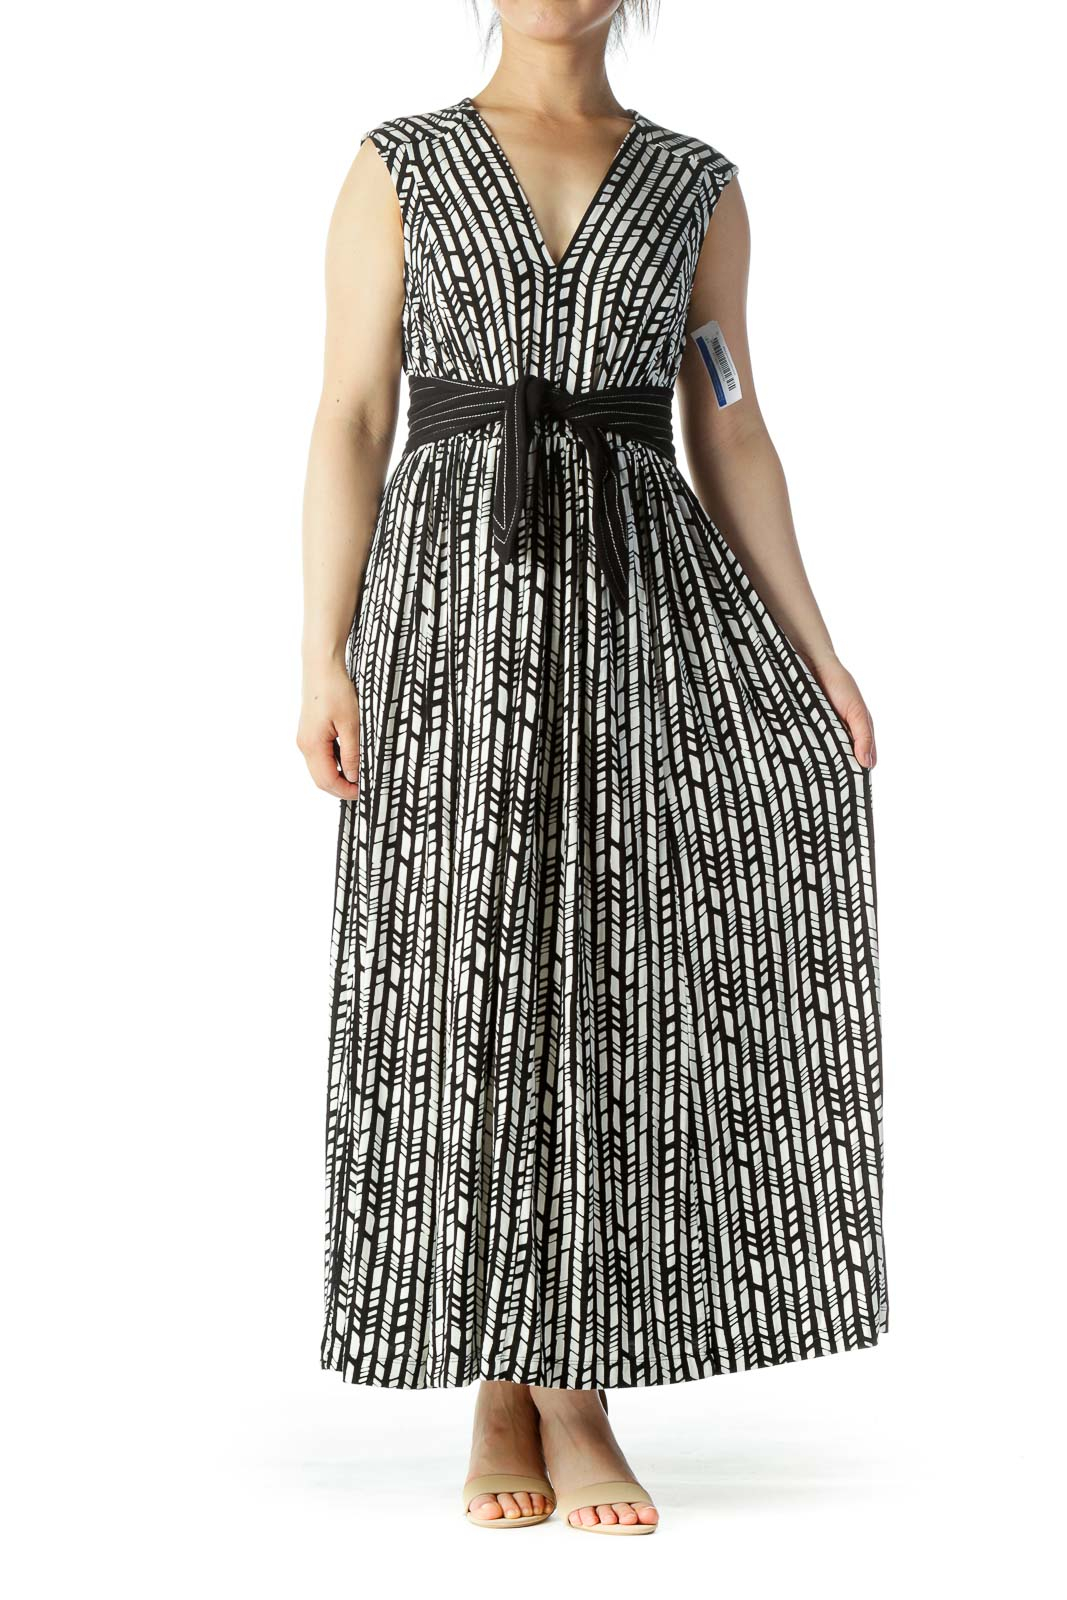 Black White Geo Patterned Maxi Dress Front